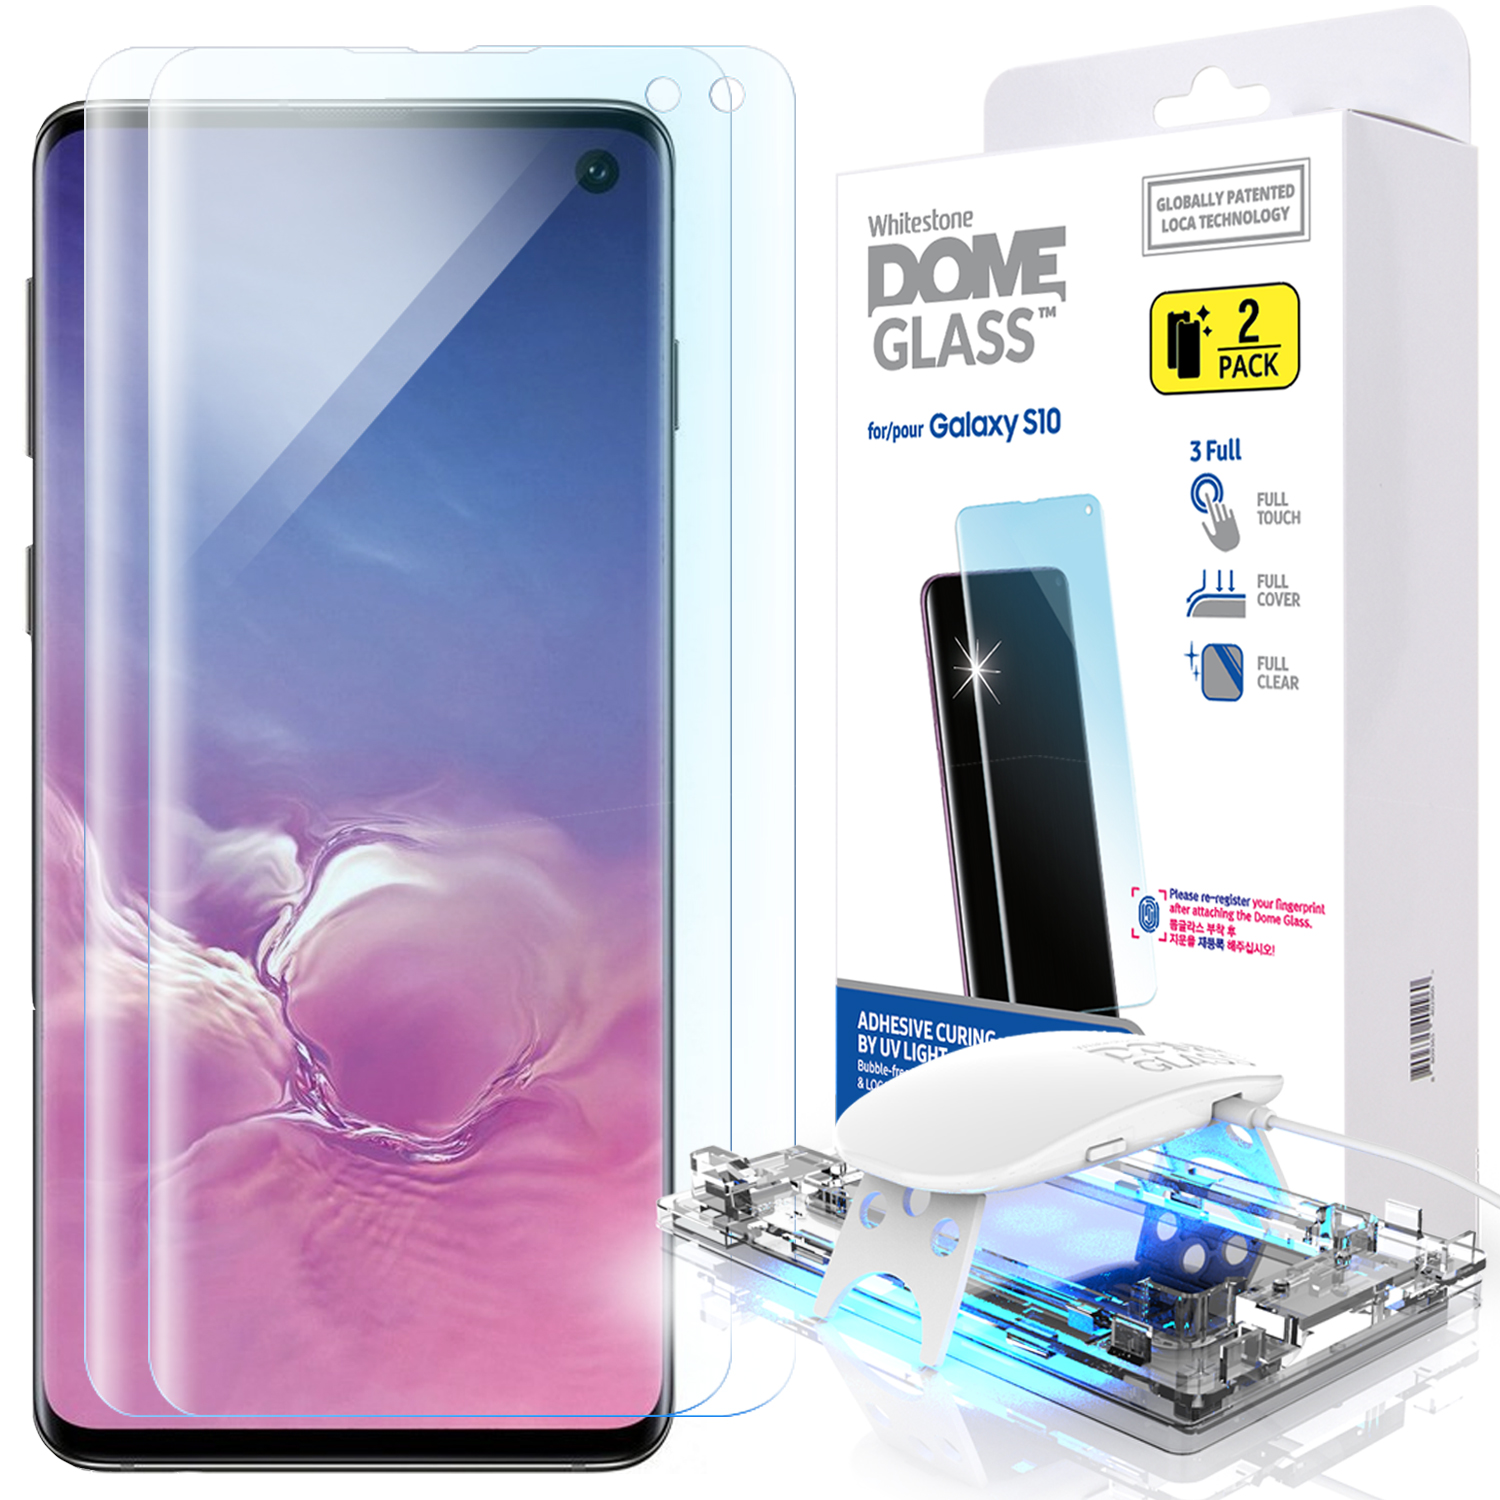 Best Screen Protector for Galaxy S10 and S10 Plus